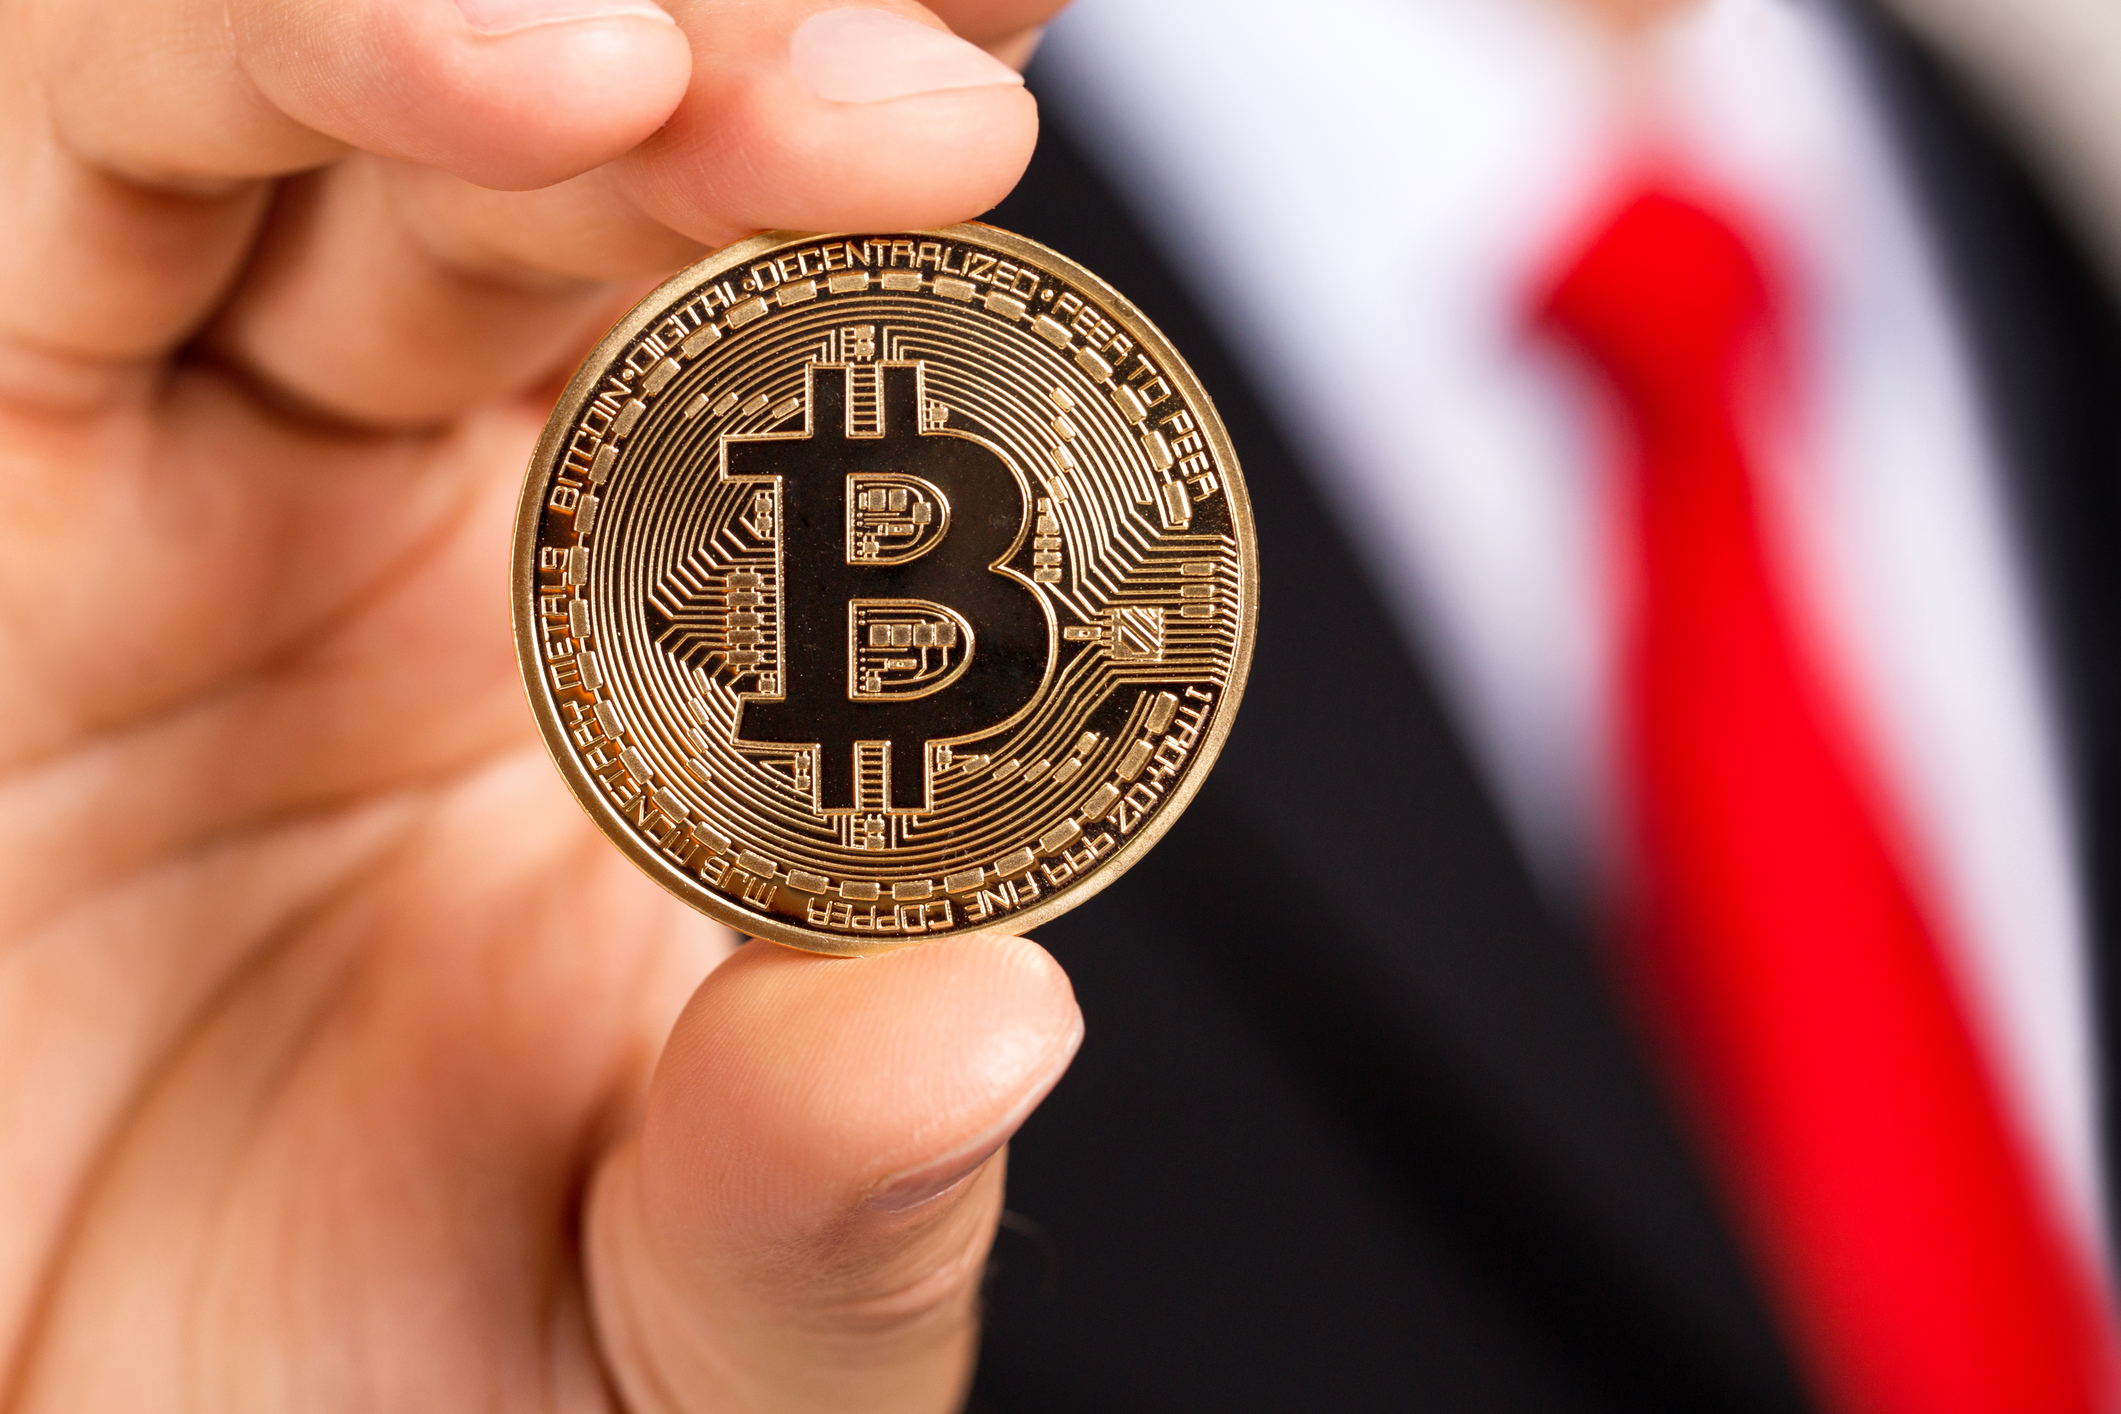 2019 Bitcoin (BTC) Price Predictions From the Crypto